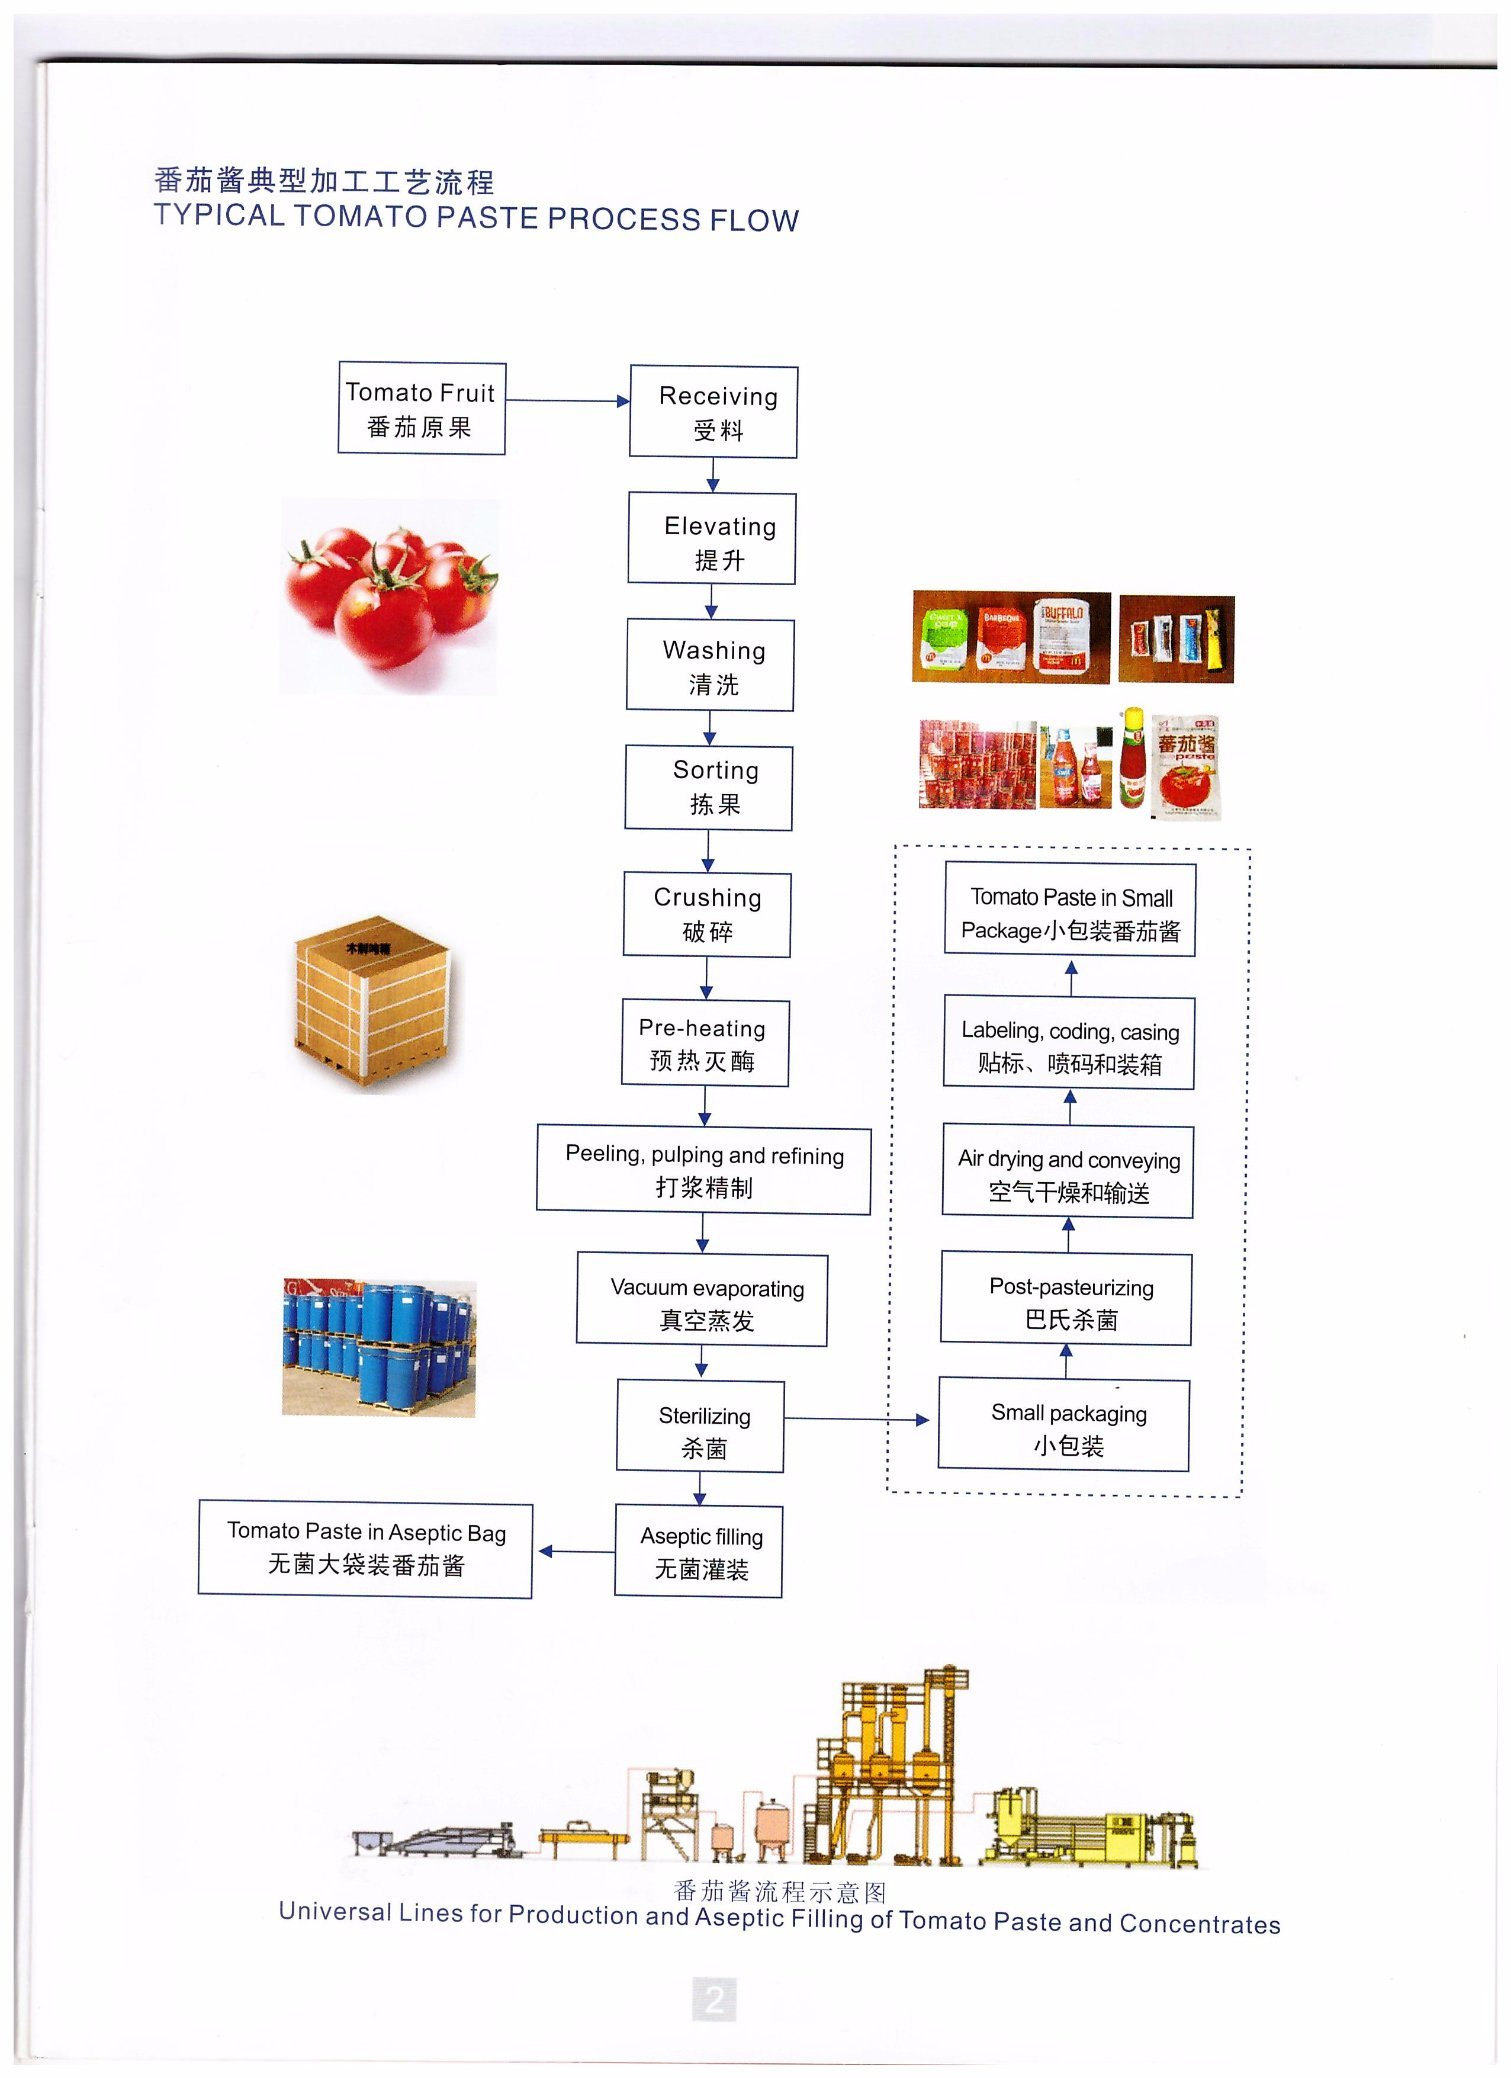 high speed tomato sauce ketchup processing line processing machine rh m made in china com Engineering Process Flow Diagram process flow chart of tomato sauce